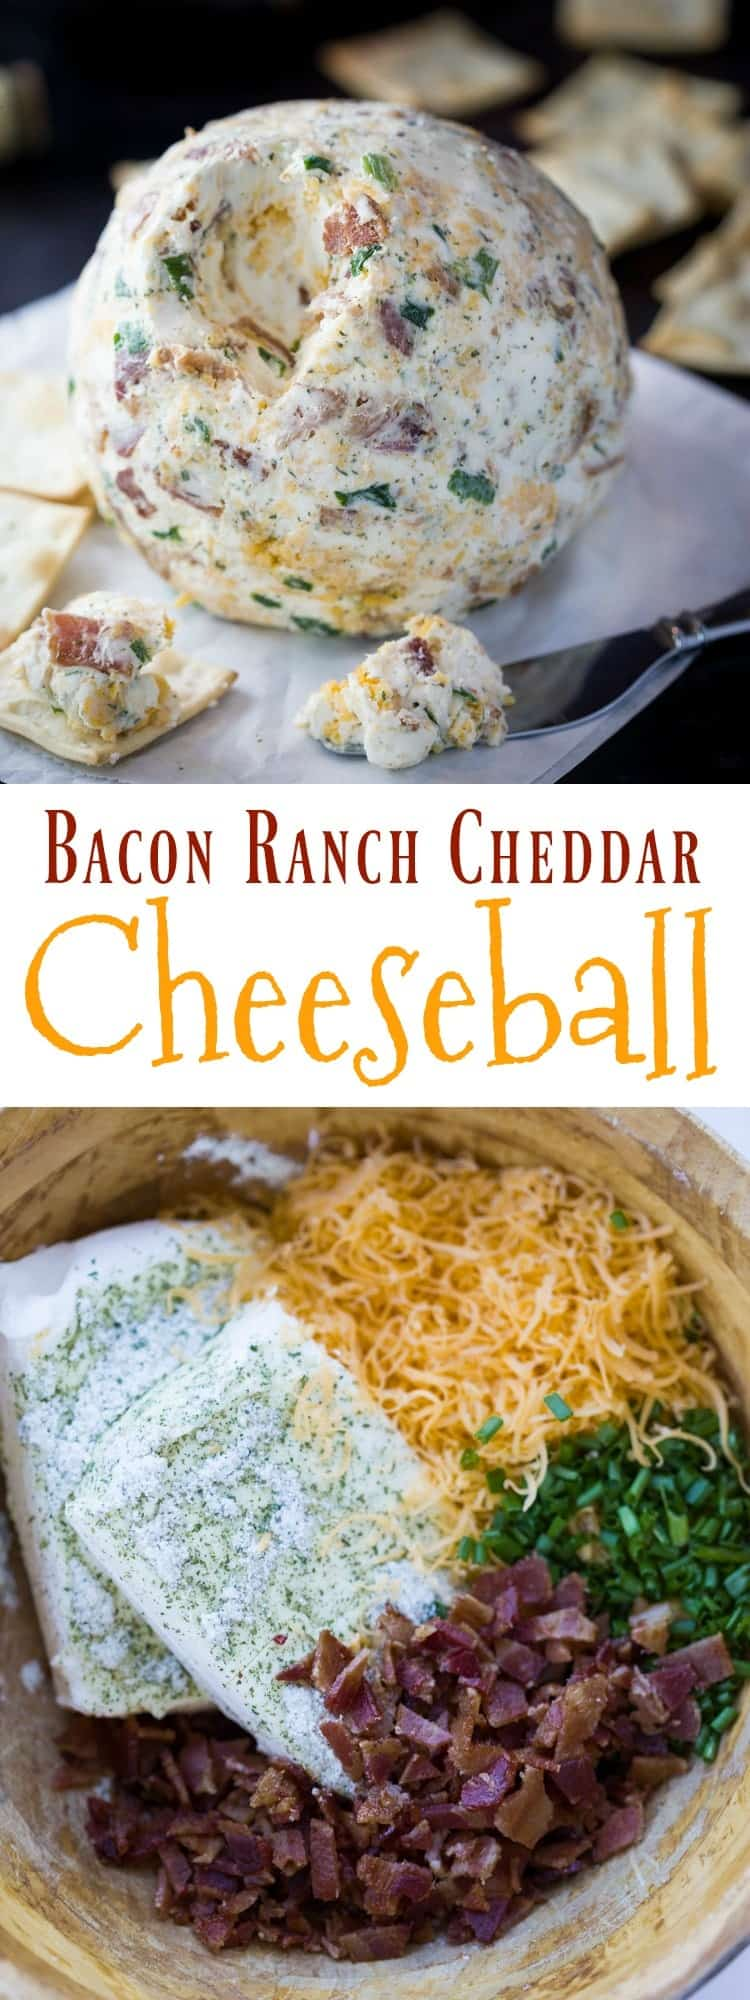 Voguish Flavors Including Crispybacon Bacon Ranch Cheddar Cheese Ball Cook Cheese Ball Recipe Paula Deen Cheese Ball Recipe Bacon This Cheeseball Has A Blend nice food Best Cheese Ball Recipe